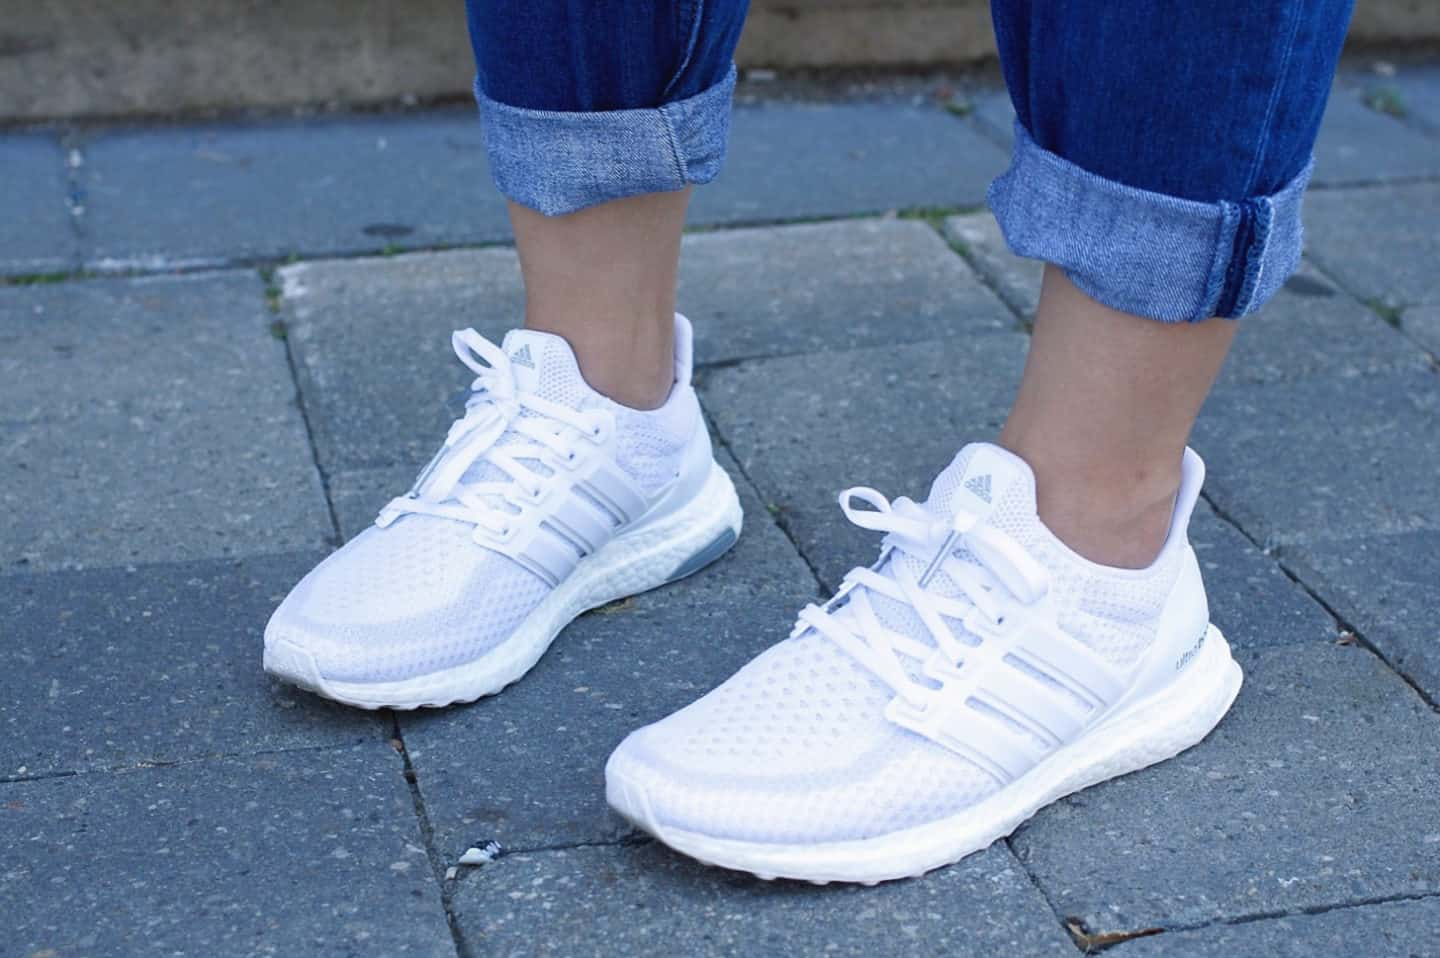 Adidas Ultra Boost Sneakers in Triple White